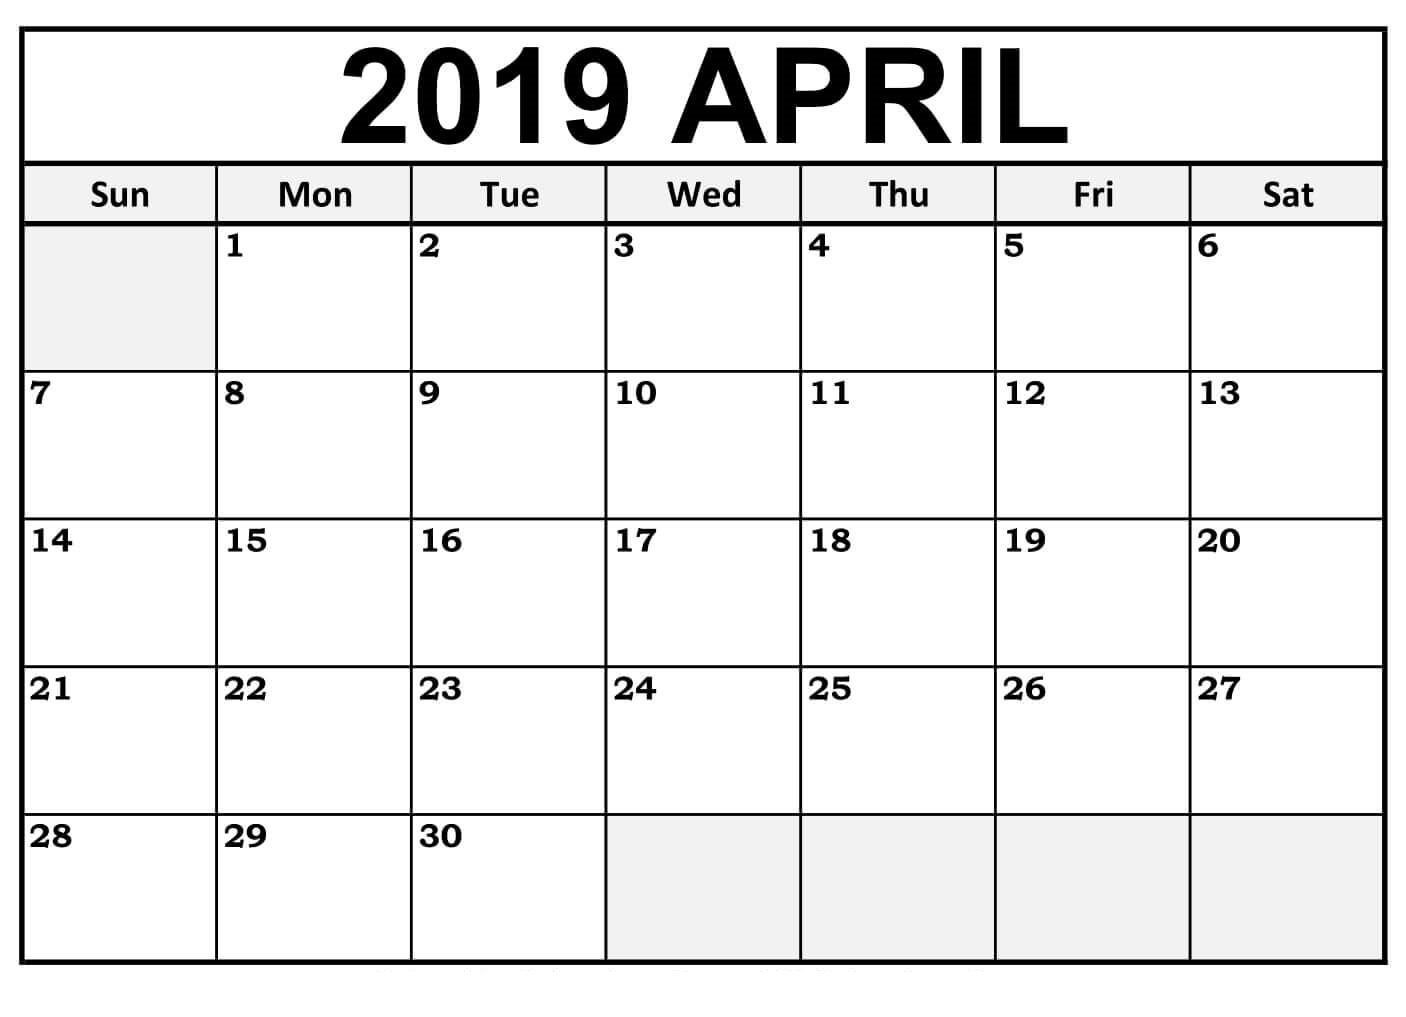 image about Waterproof Printable Calendar referred to as Printable April 2019 Calendar For Water resistant Template